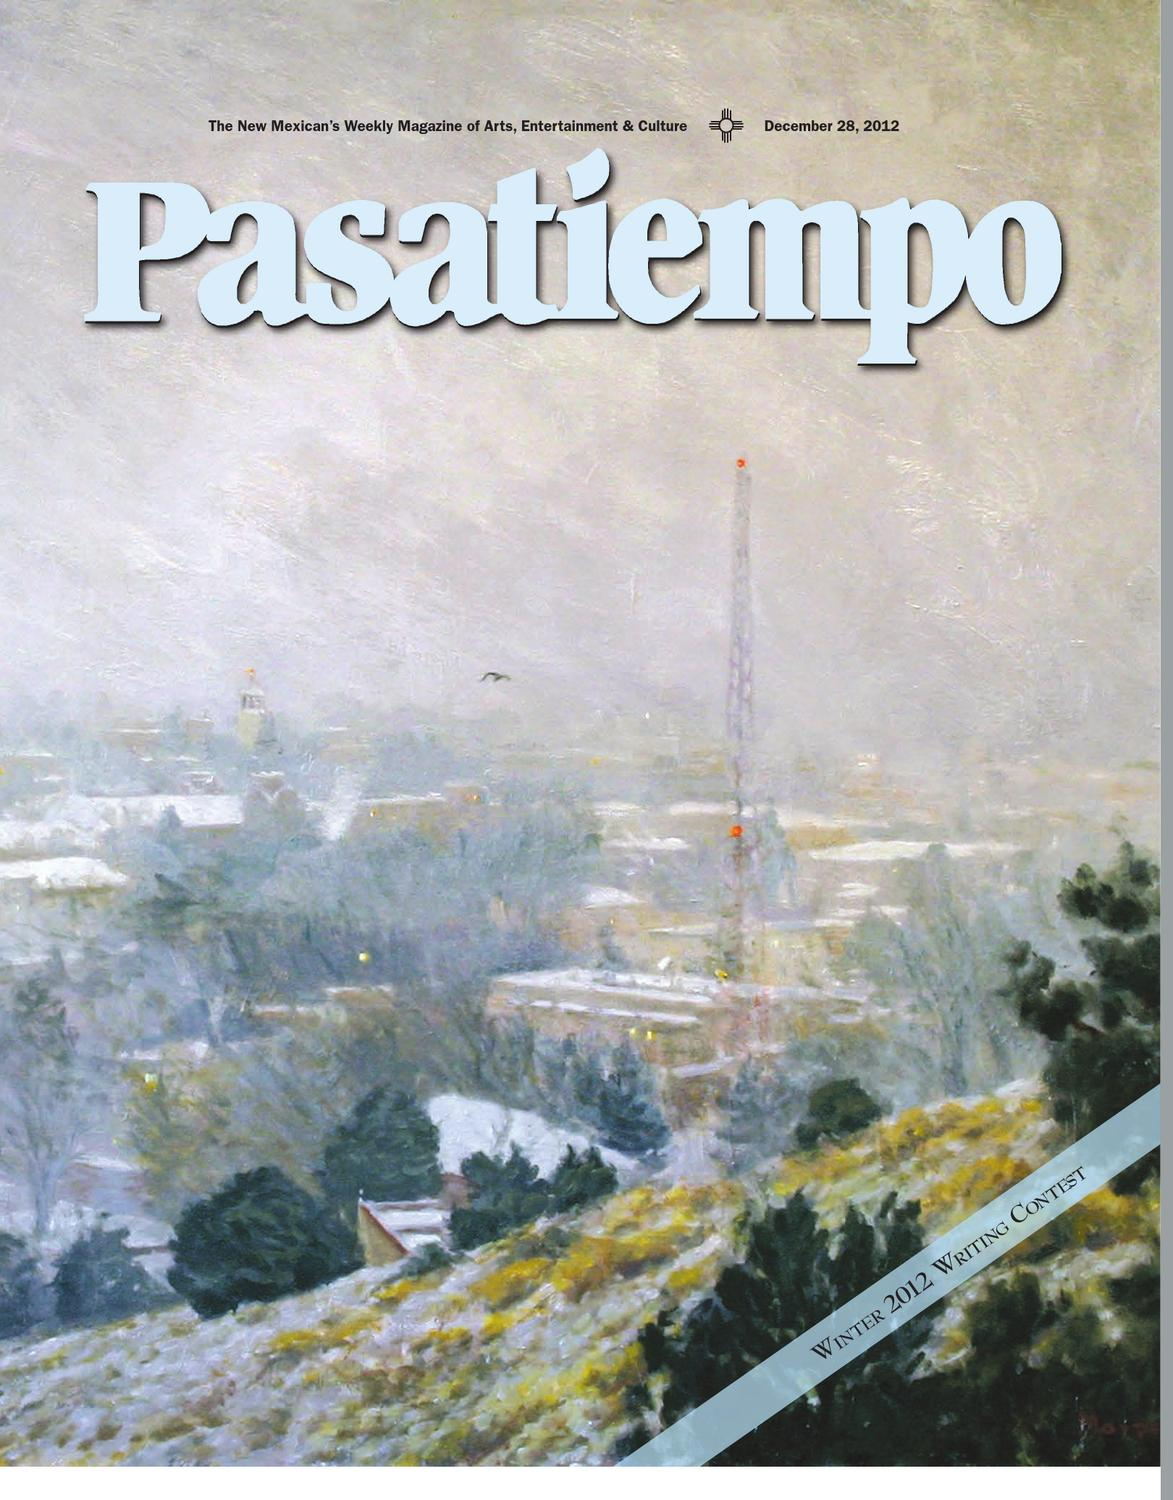 Pasatiempo, Dec  28, 2012 by The New Mexican - issuu